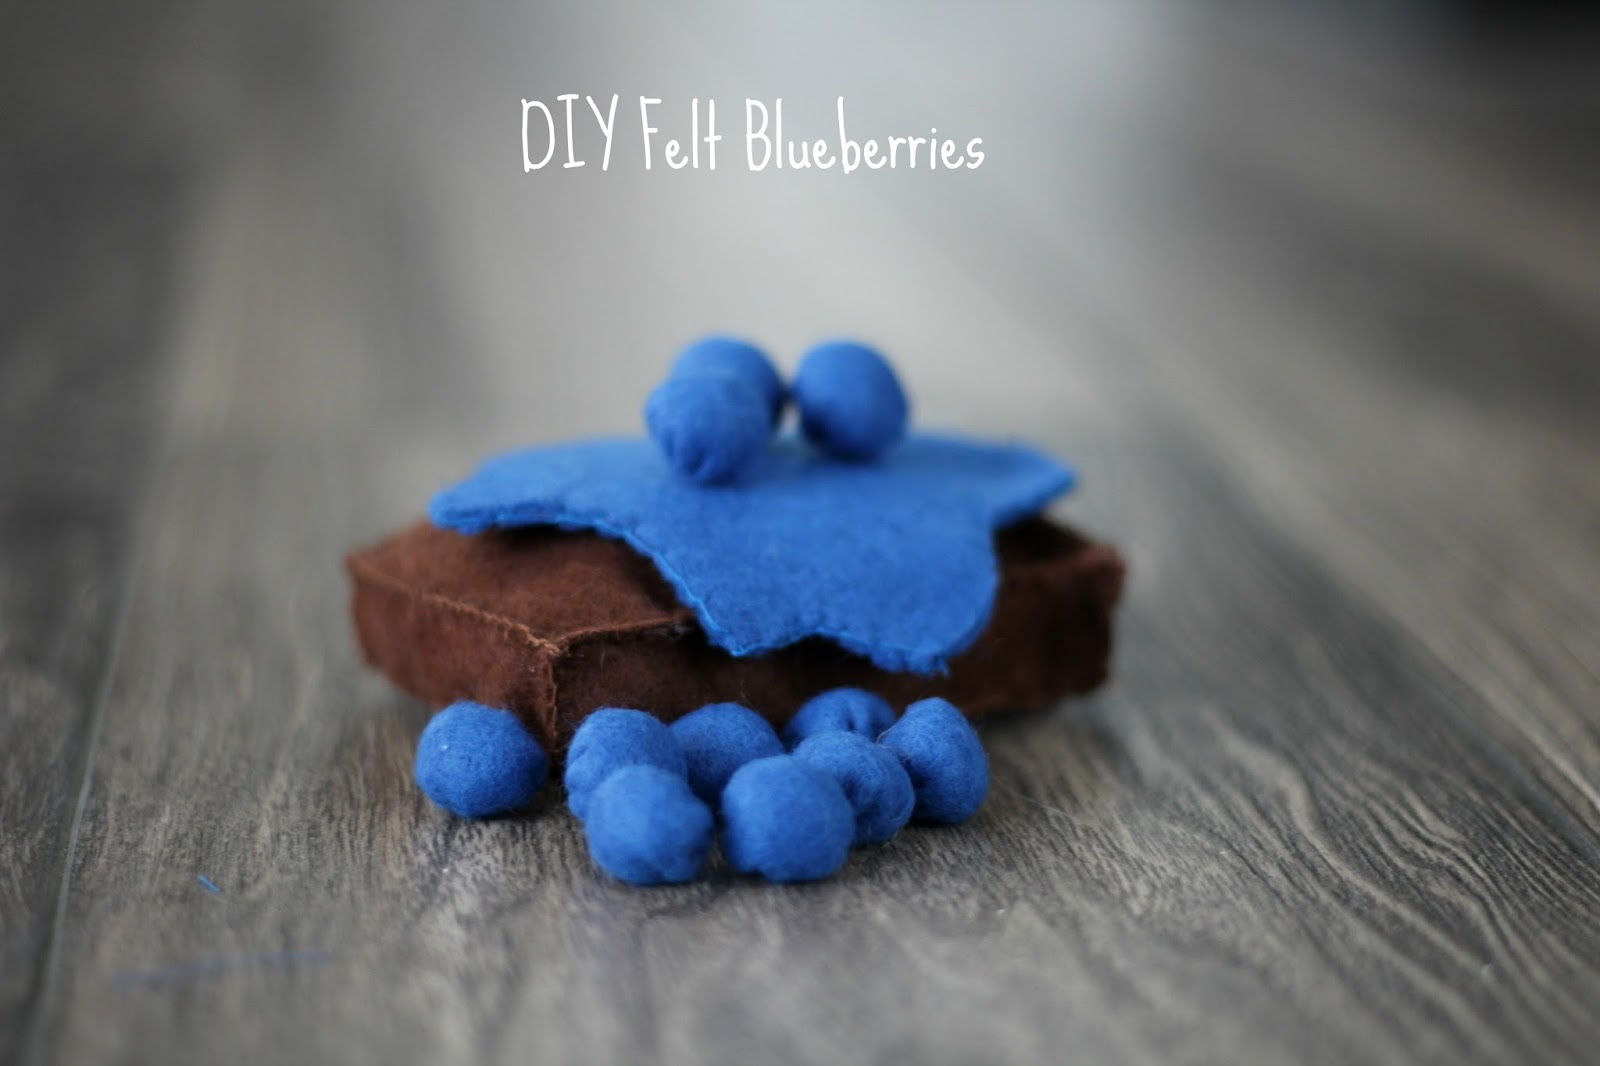 DIY Felt Blueberries graphic